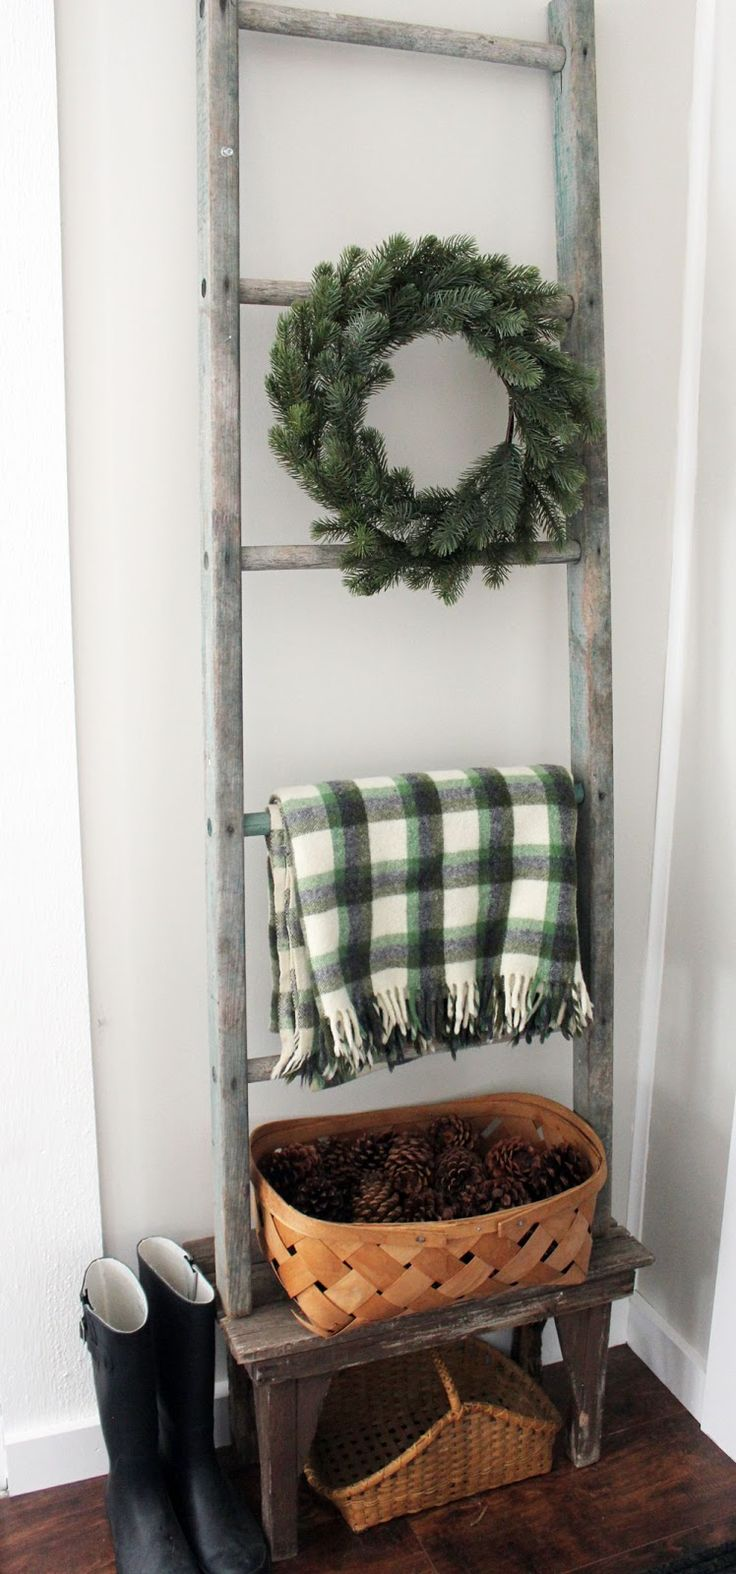 499 best All Things Ladders... images on Pinterest | Bathroom ...